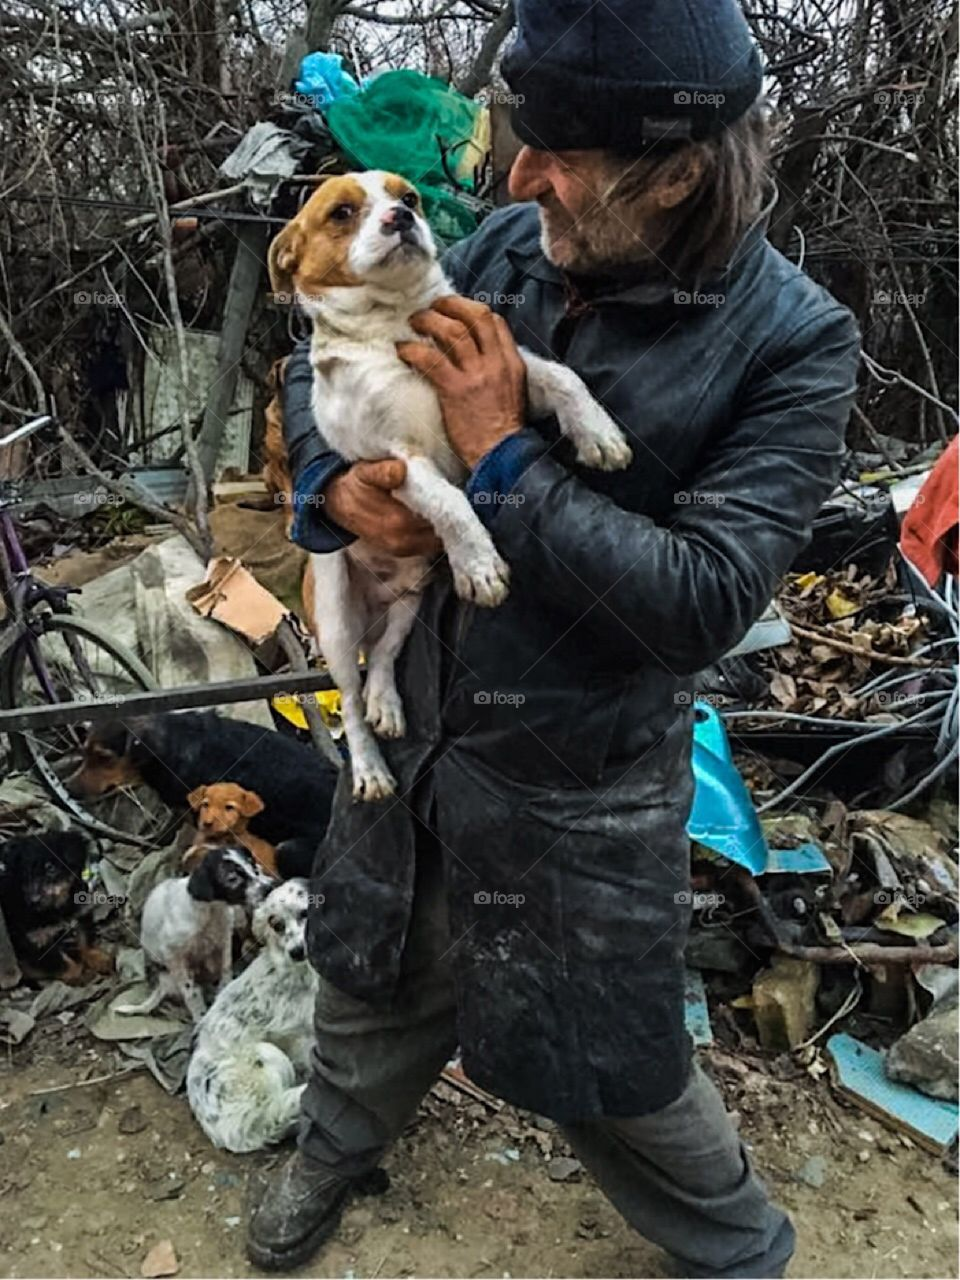 homeless man with his dogs, serbia.